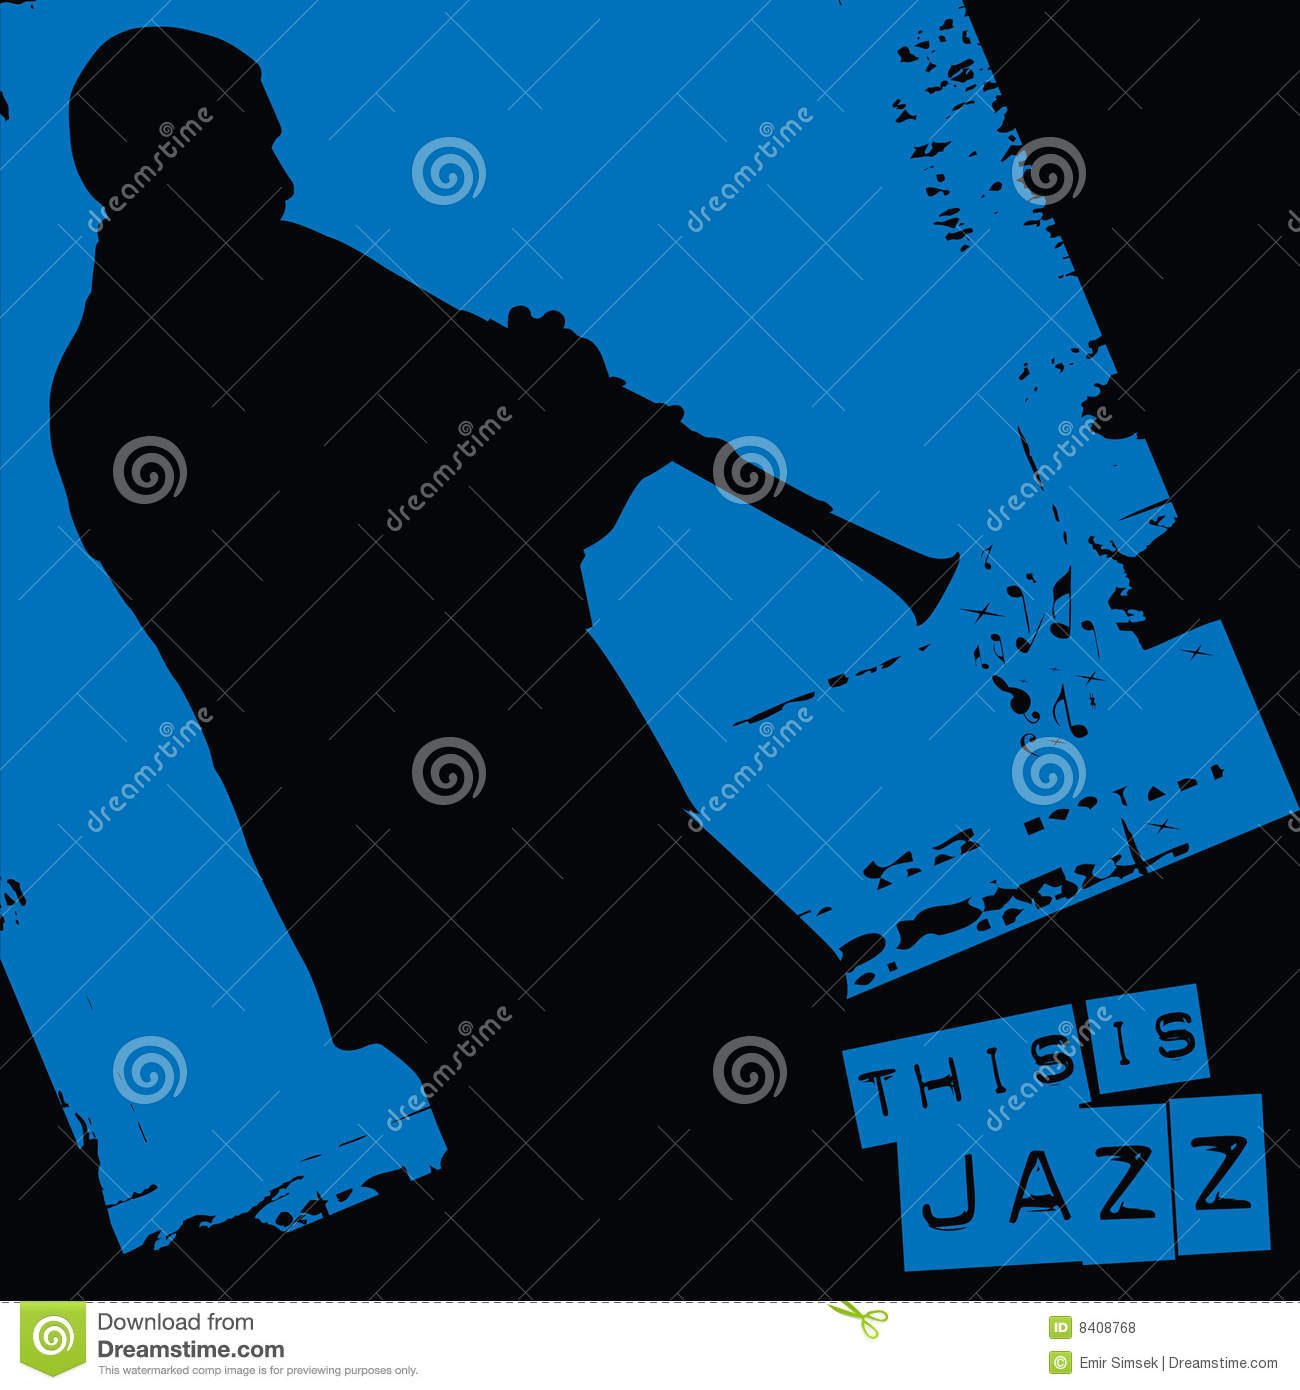 This is jazz